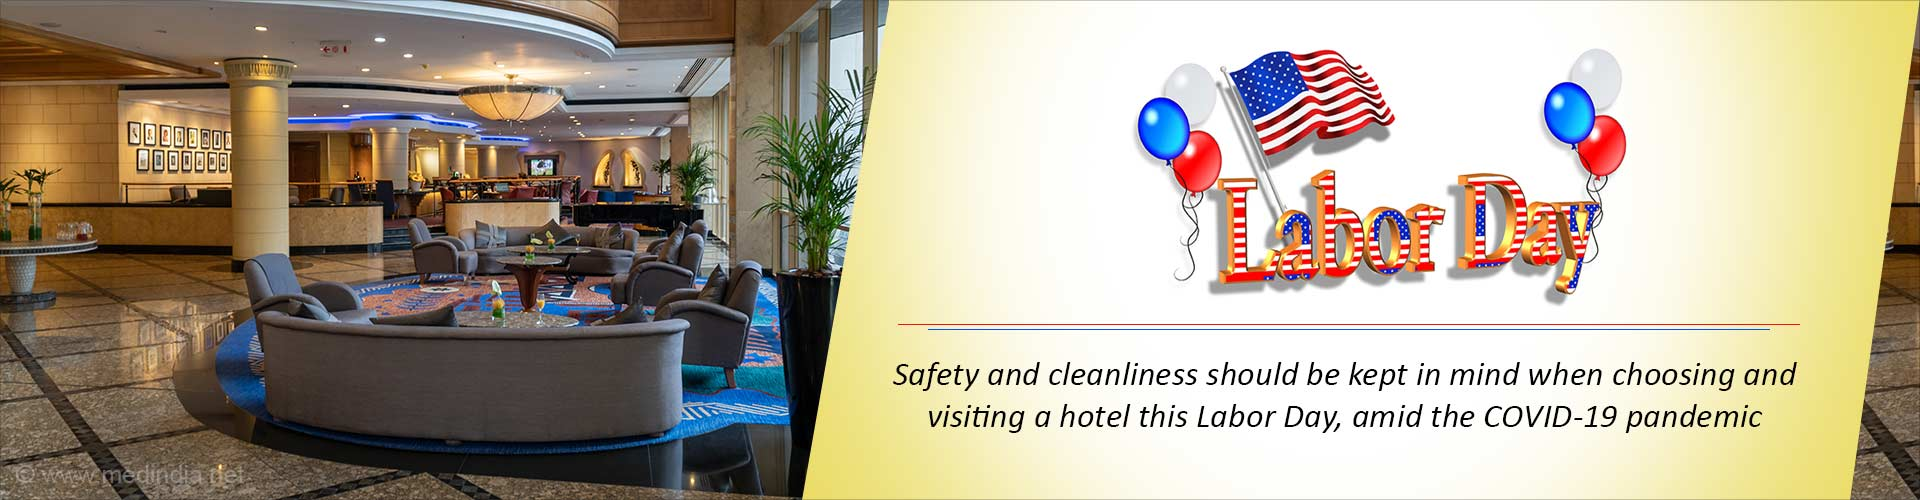 Tips for Safe Hotel Stay This Labor Day During the COVID-19 Pandemic